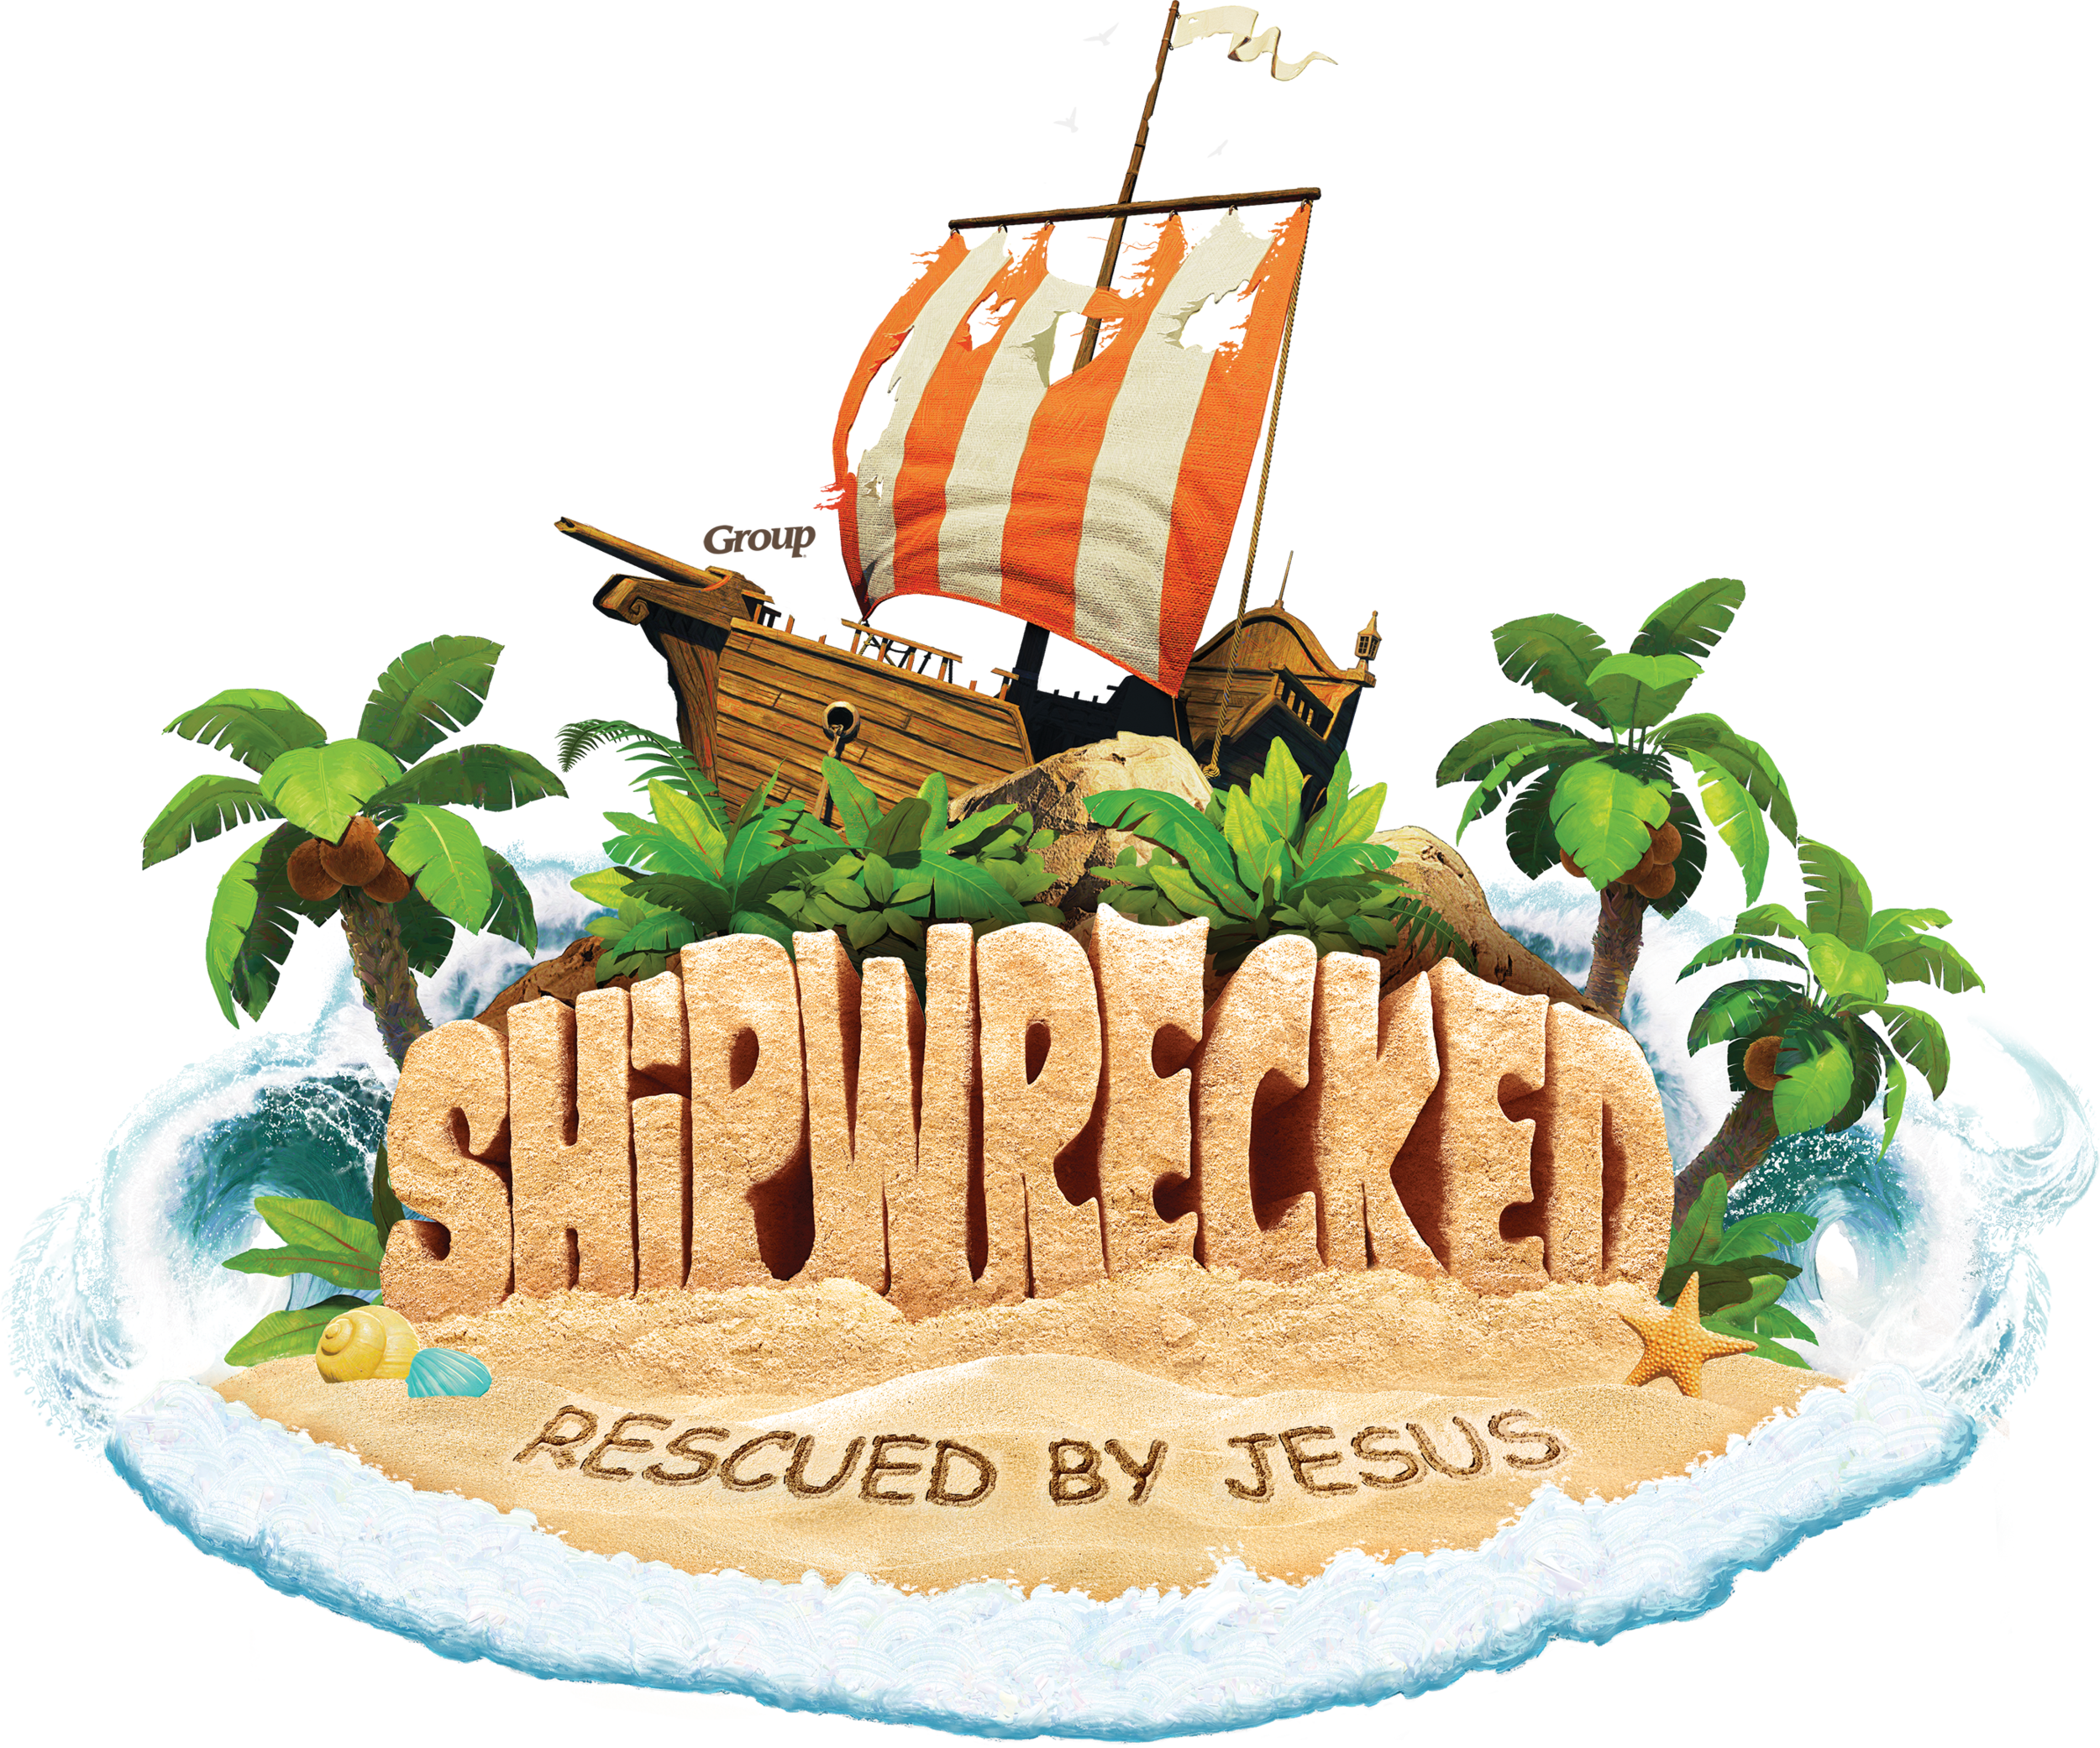 Register for Shipwrecked VBS at Silvertown Baptist Church TODAY because it's going to be a boat load of fun!